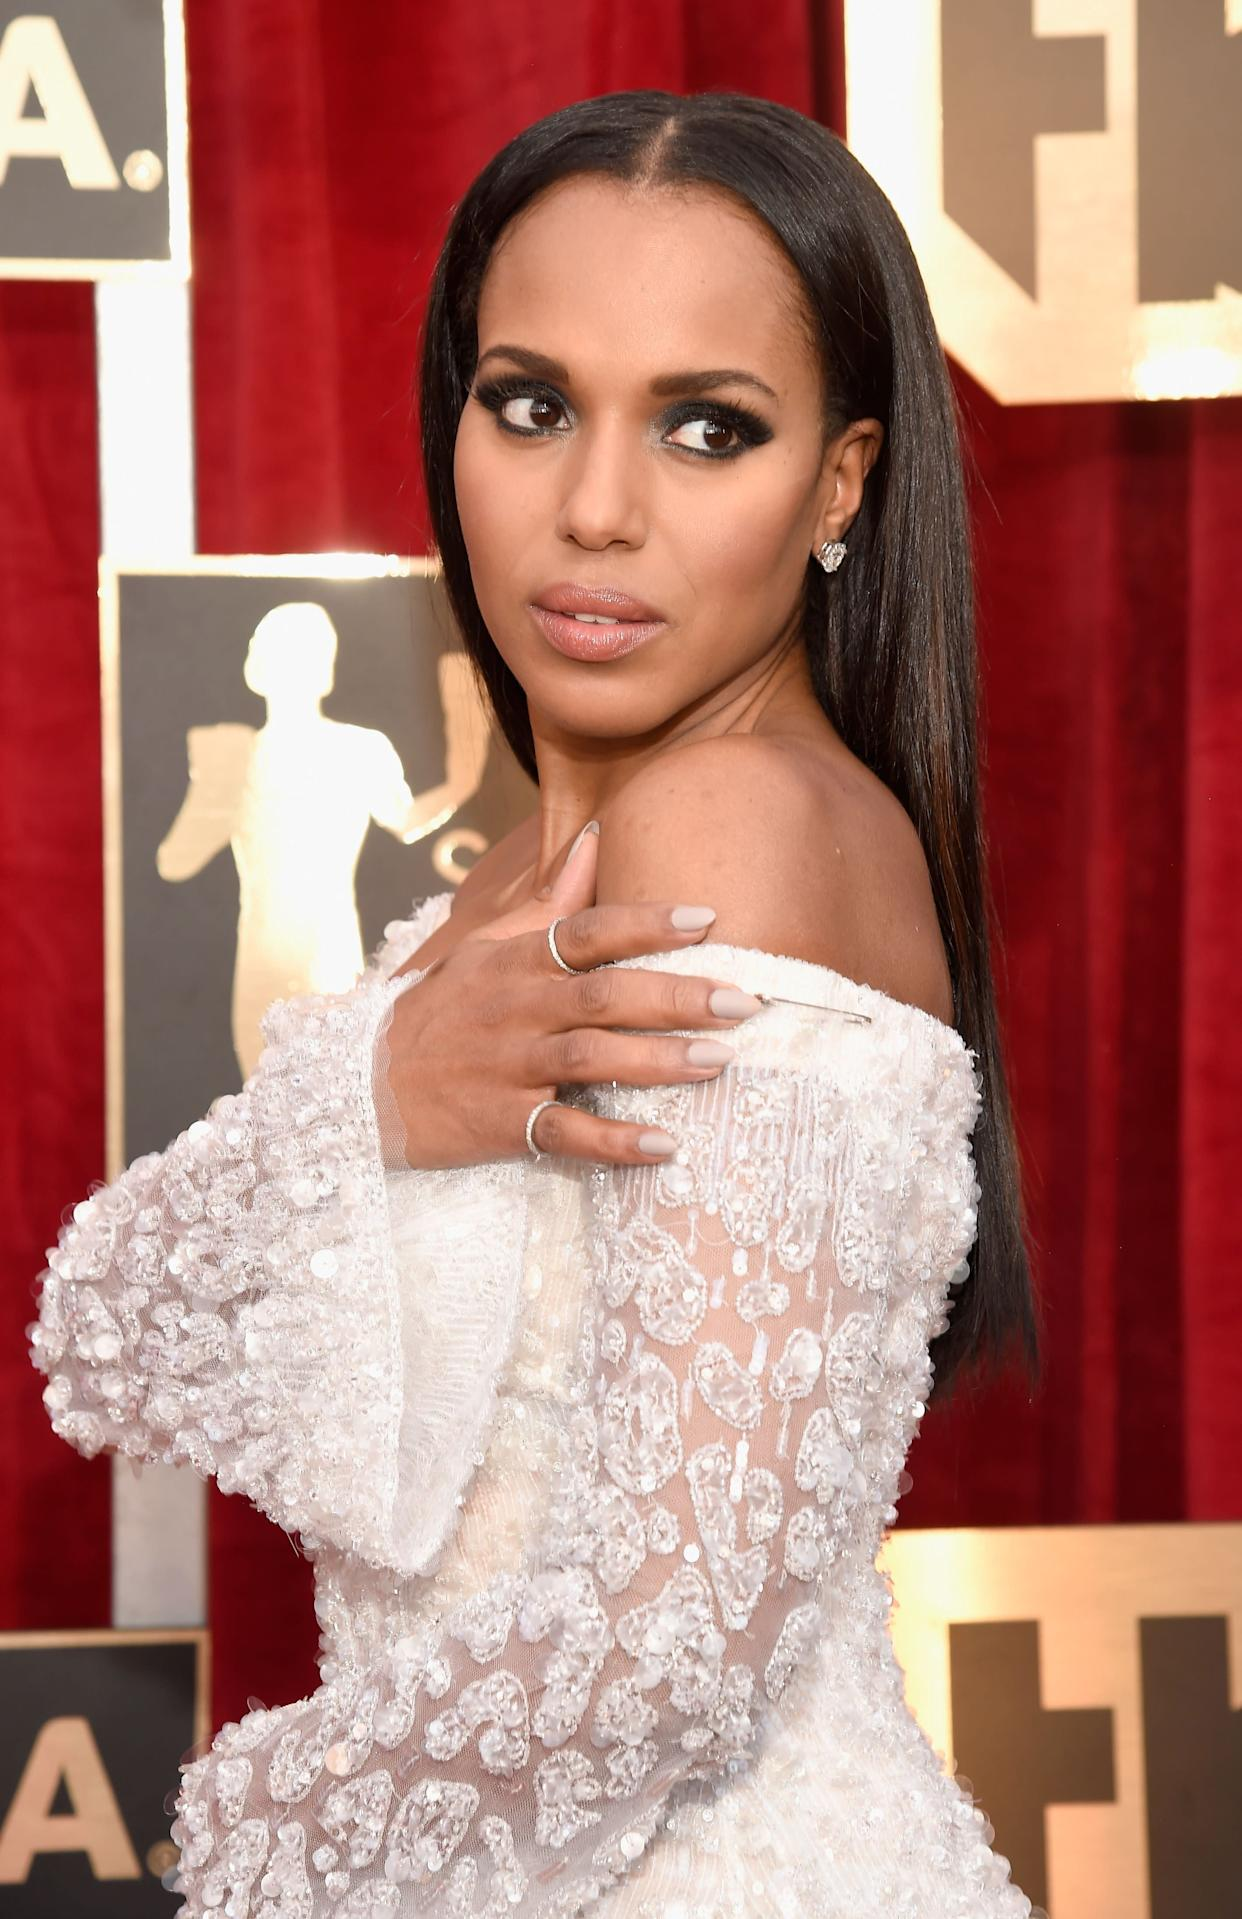 Kerry Washington wears a safety pin during the 23rd annual Screen Actors Guild Awards.<br><br>&quot;I&amp;rsquo;ll be wearing one of these tonight. On my arm. To show solidarity. We will not stop fighting for our safety &amp;amp; the safety of our fellow citizens and human beings.&amp;nbsp;Actors are activists, no matter what, because we embody the worth and humanity of all people.&quot;